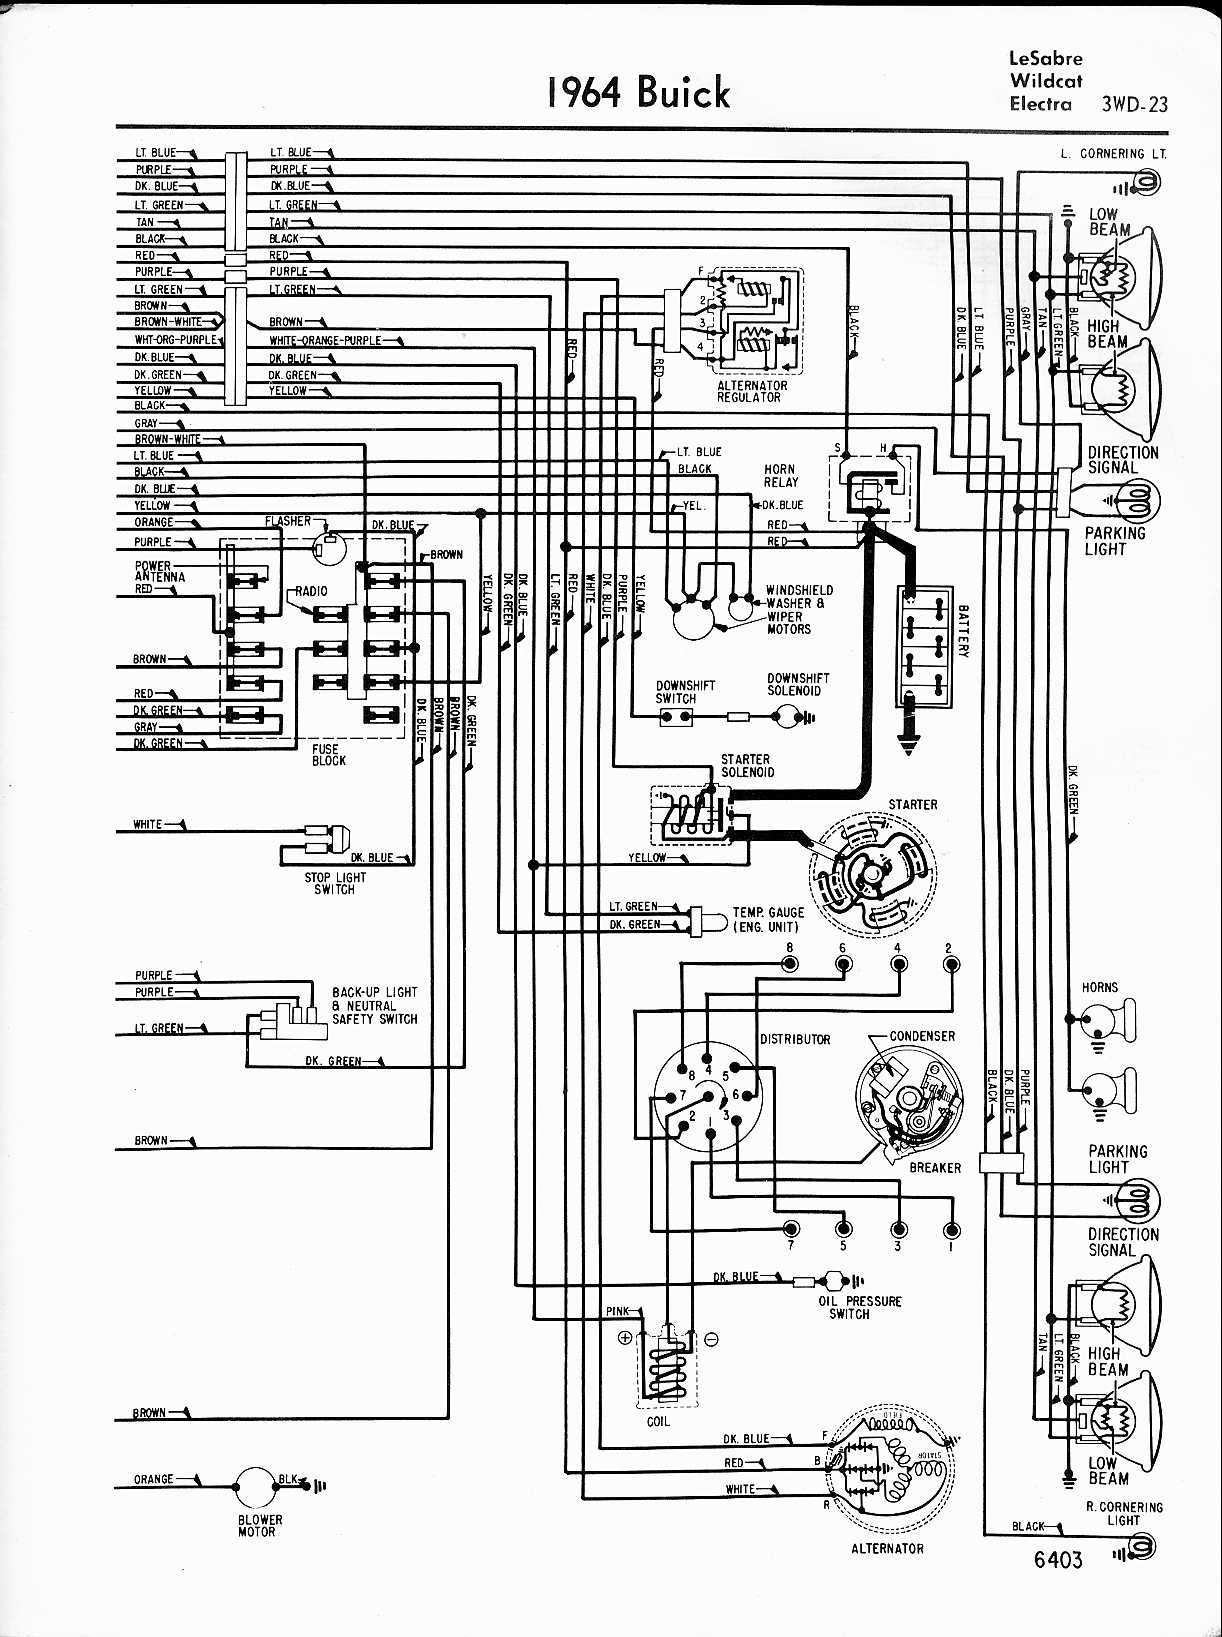 2000 Buick Lesabre Wiring Diagram Buick Reatta Wiring Diagram Buick Free Engine Image for User Manual Of 2000 Buick Lesabre Wiring Diagram